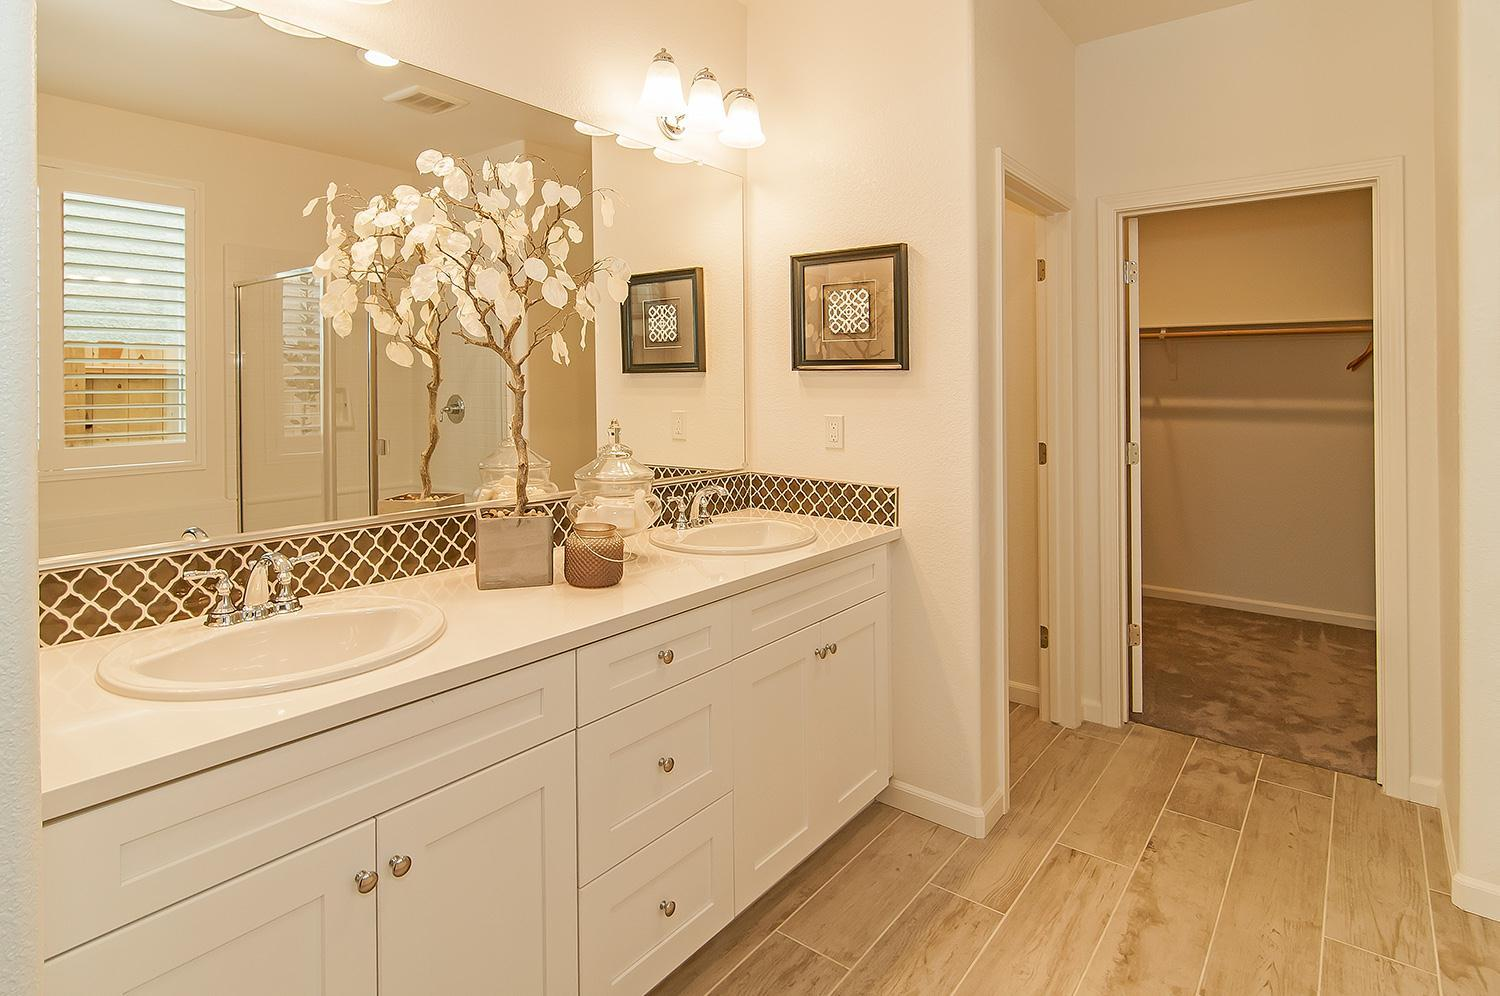 Bathroom featured in the Residence 1818 By Legacy Homes in Merced, CA